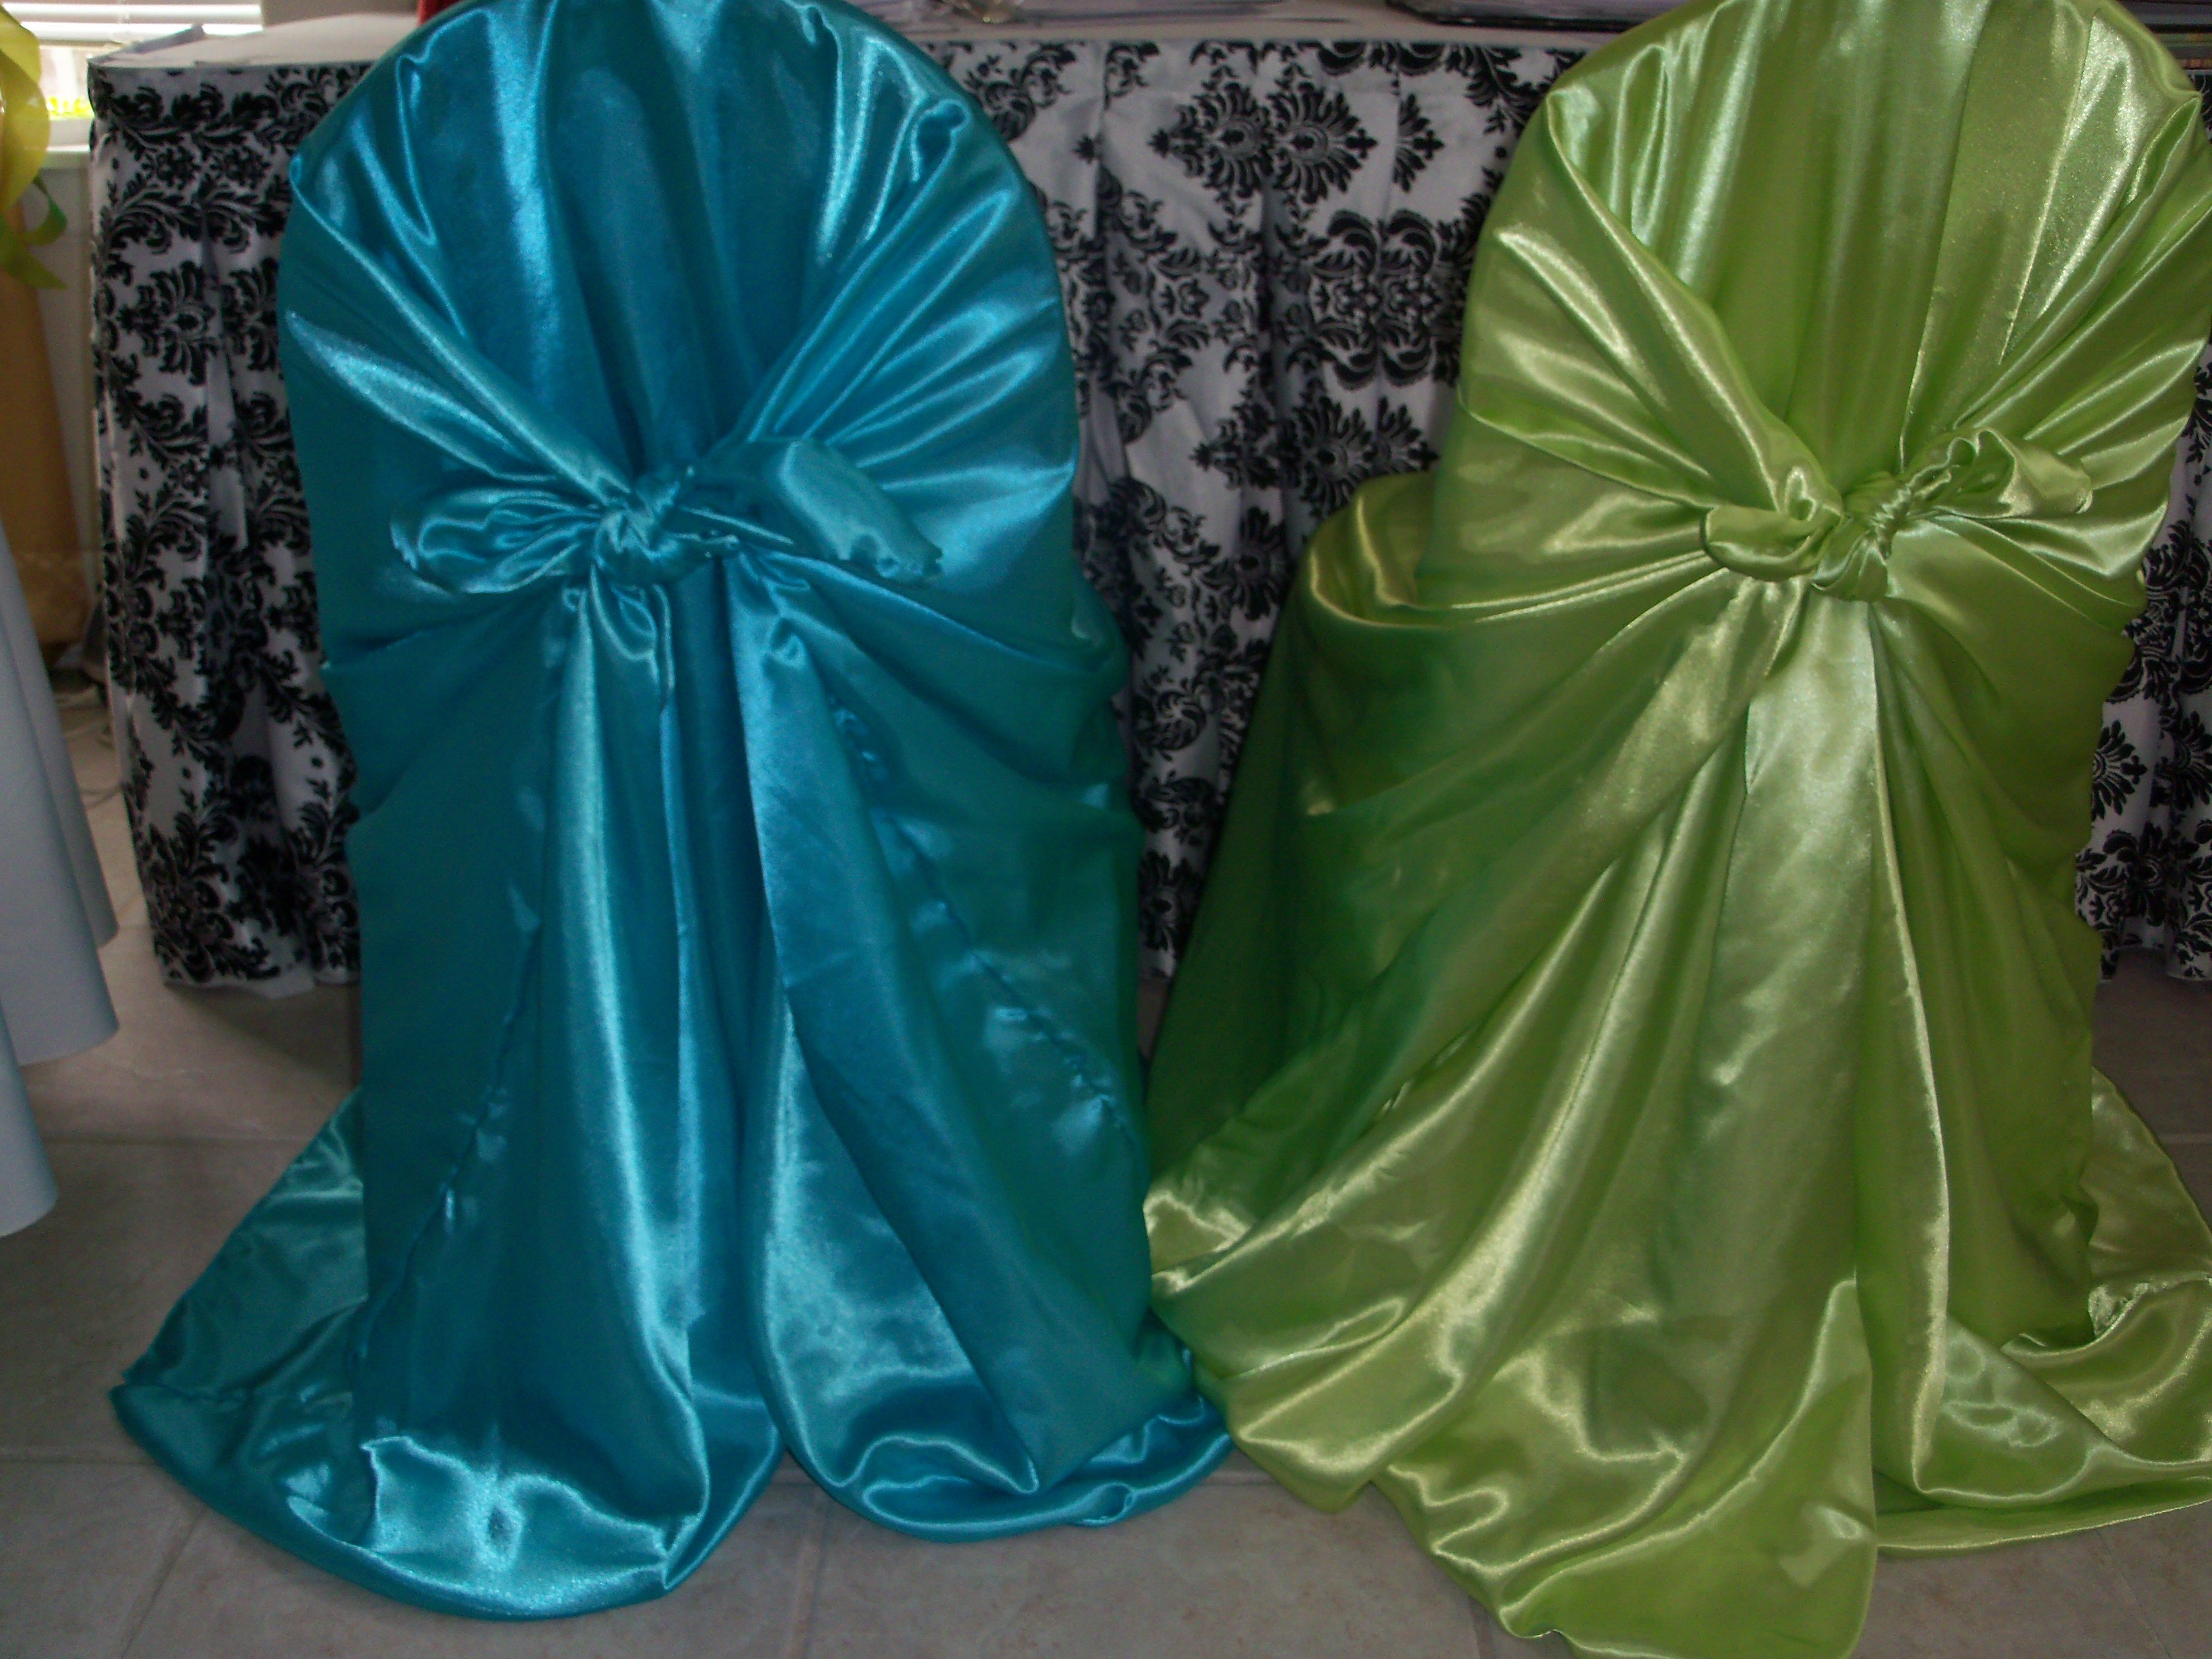 how to make easy chair covers for wedding rustic childrens table and chairs no sew folding diy decorating cushion slipcovers